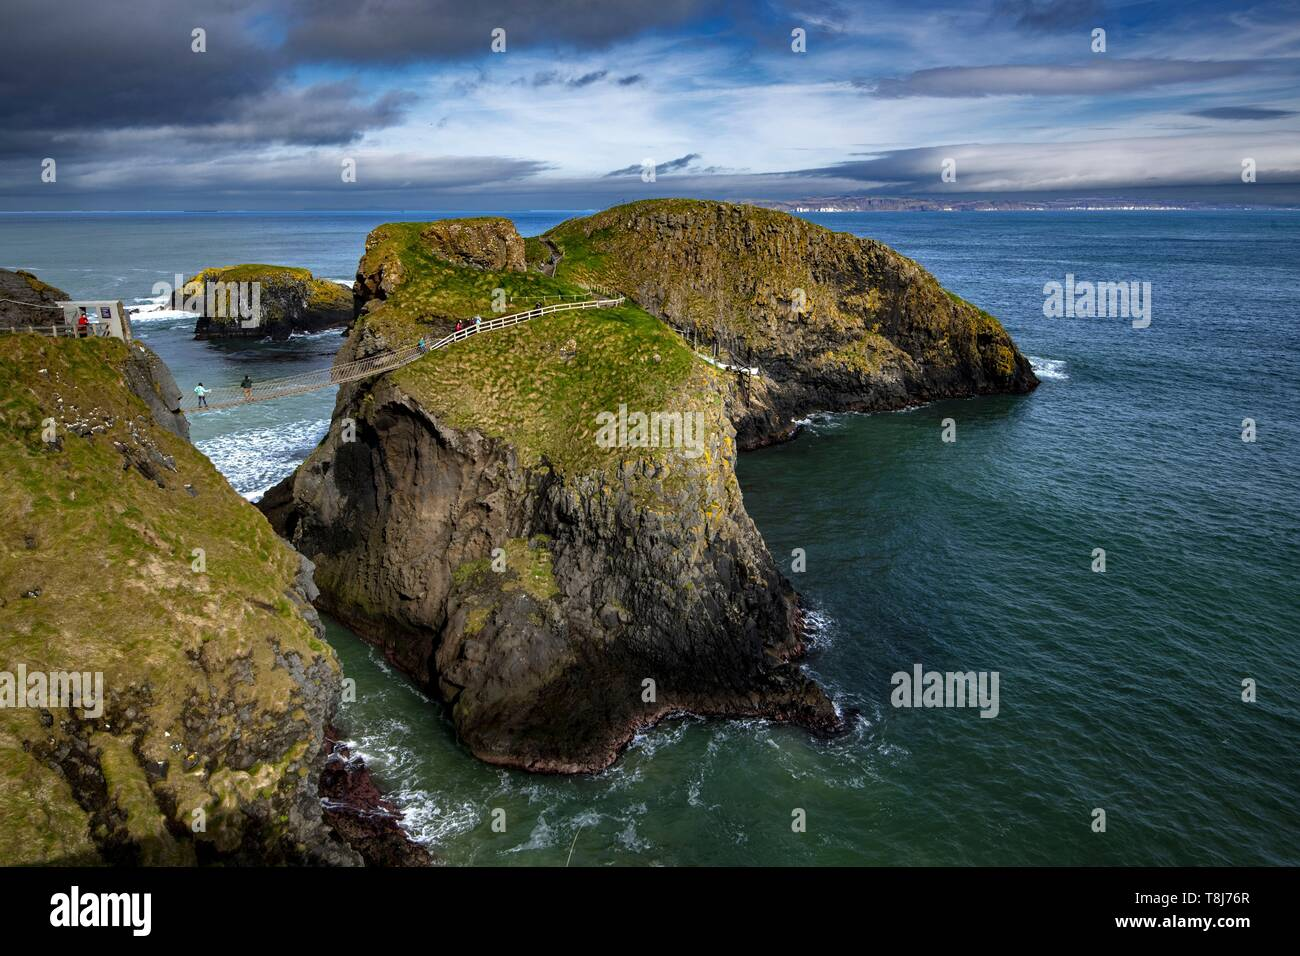 United Kingdom, Northern Ireland, Ulster, county Antrim, The Carrick-a-Rede rope bridge - Stock Image